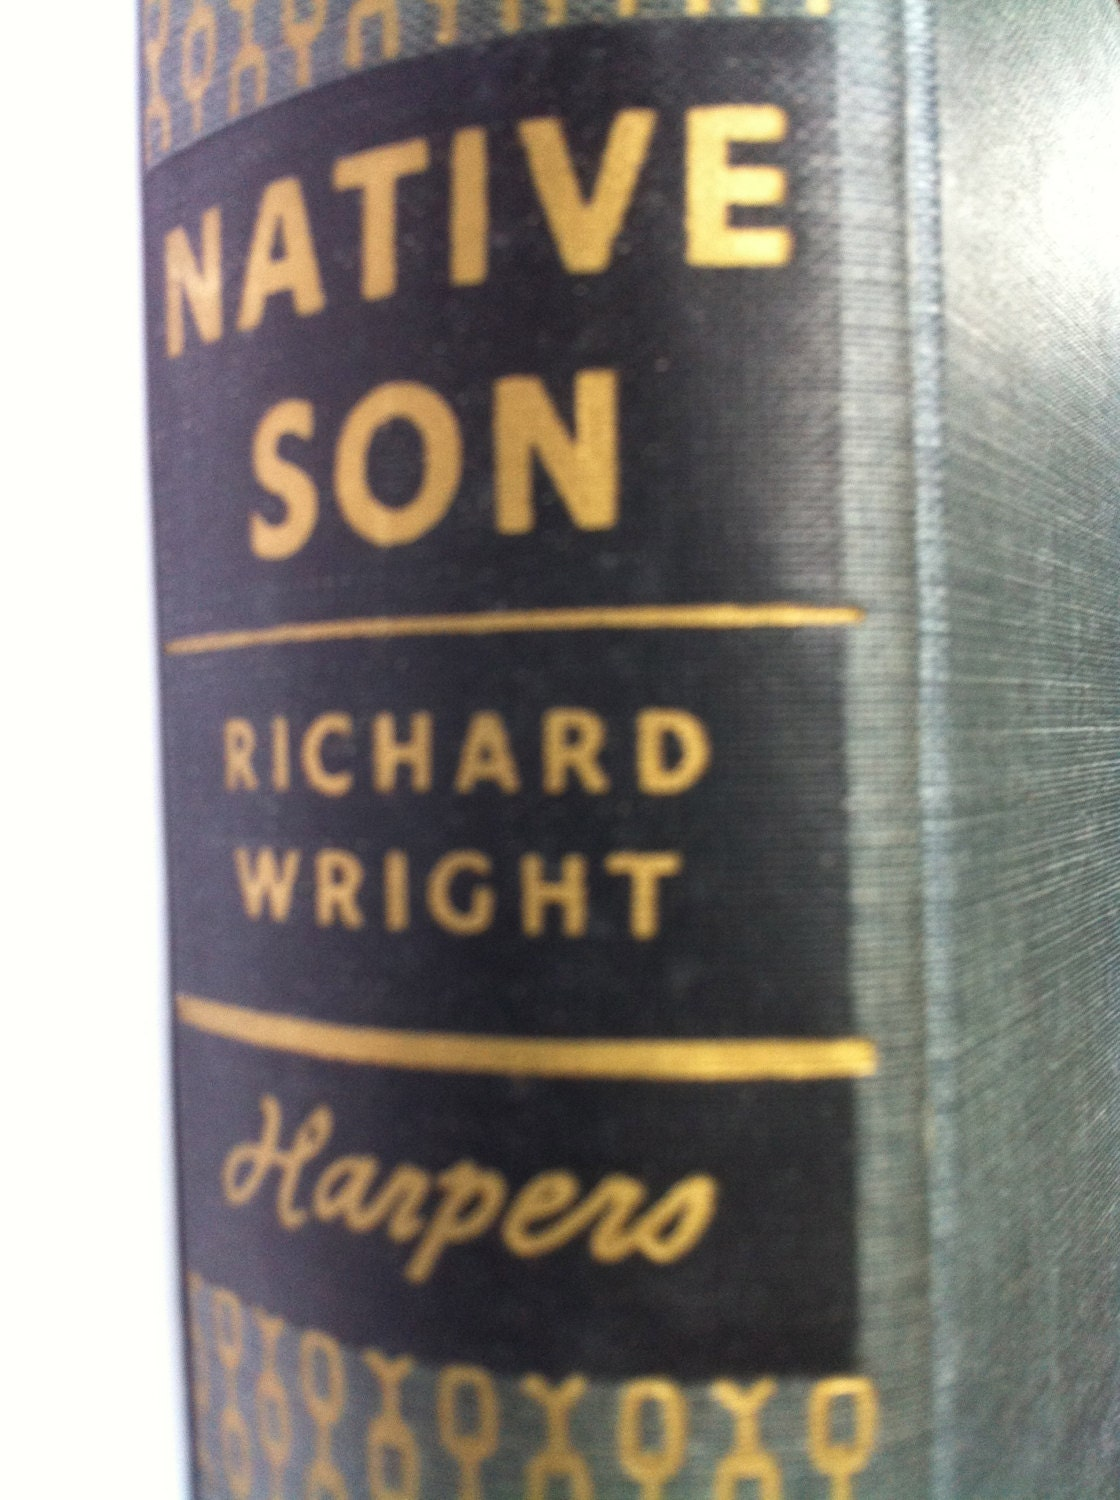 an interpretation of native son by richard wright In native son, wright employs naturalistic ideology and imagery, creating the character of bigger thomas, who seems to be composed of a mass of disruptive.